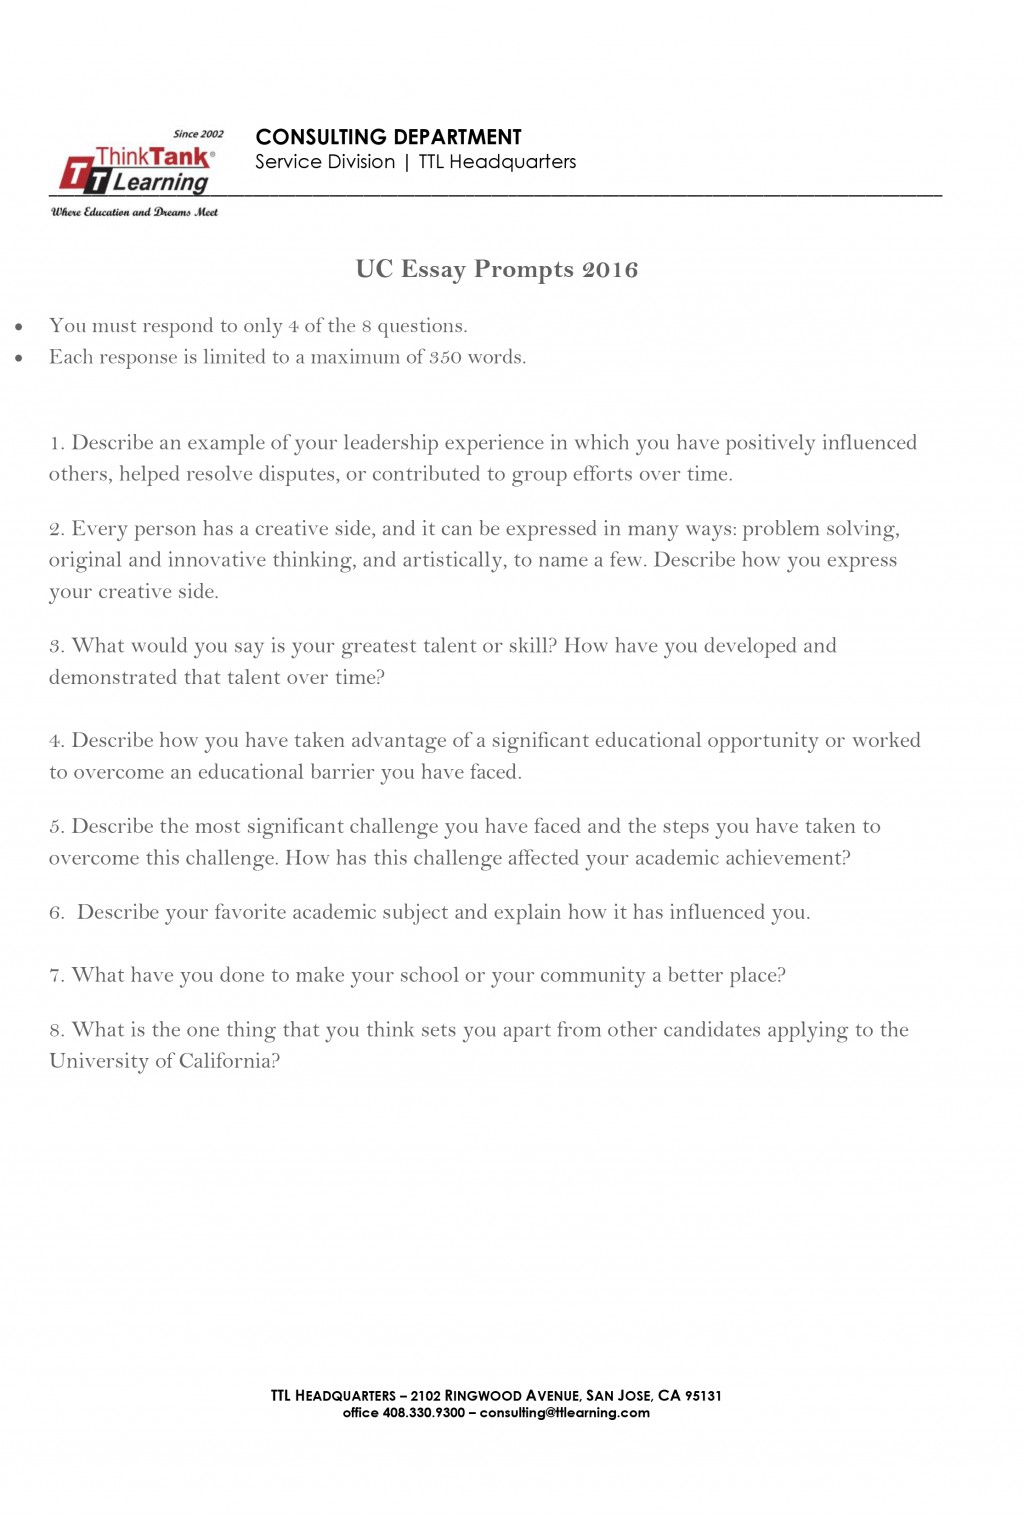 014 Uc Essay 2016 2 Example Application Imposing Prompts 2016-17 Examples Prompt 1 Berkeley 2017 Large